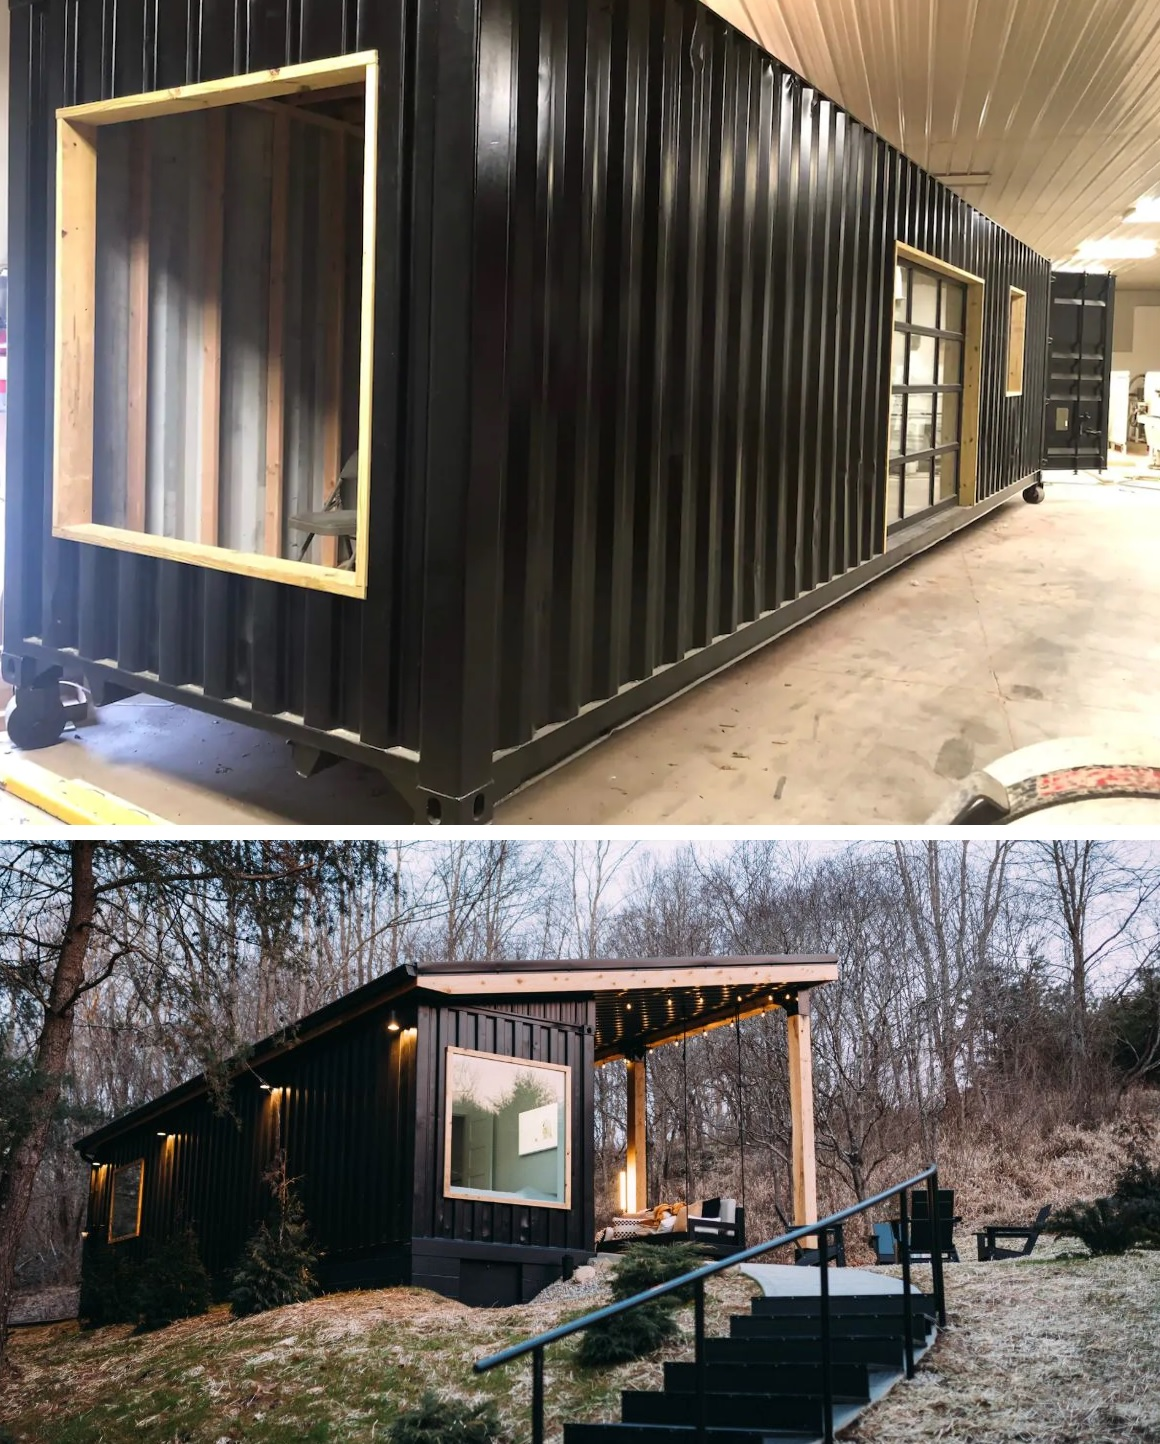 The exterior of the container is black and that allows it to more easily blend into the landscape